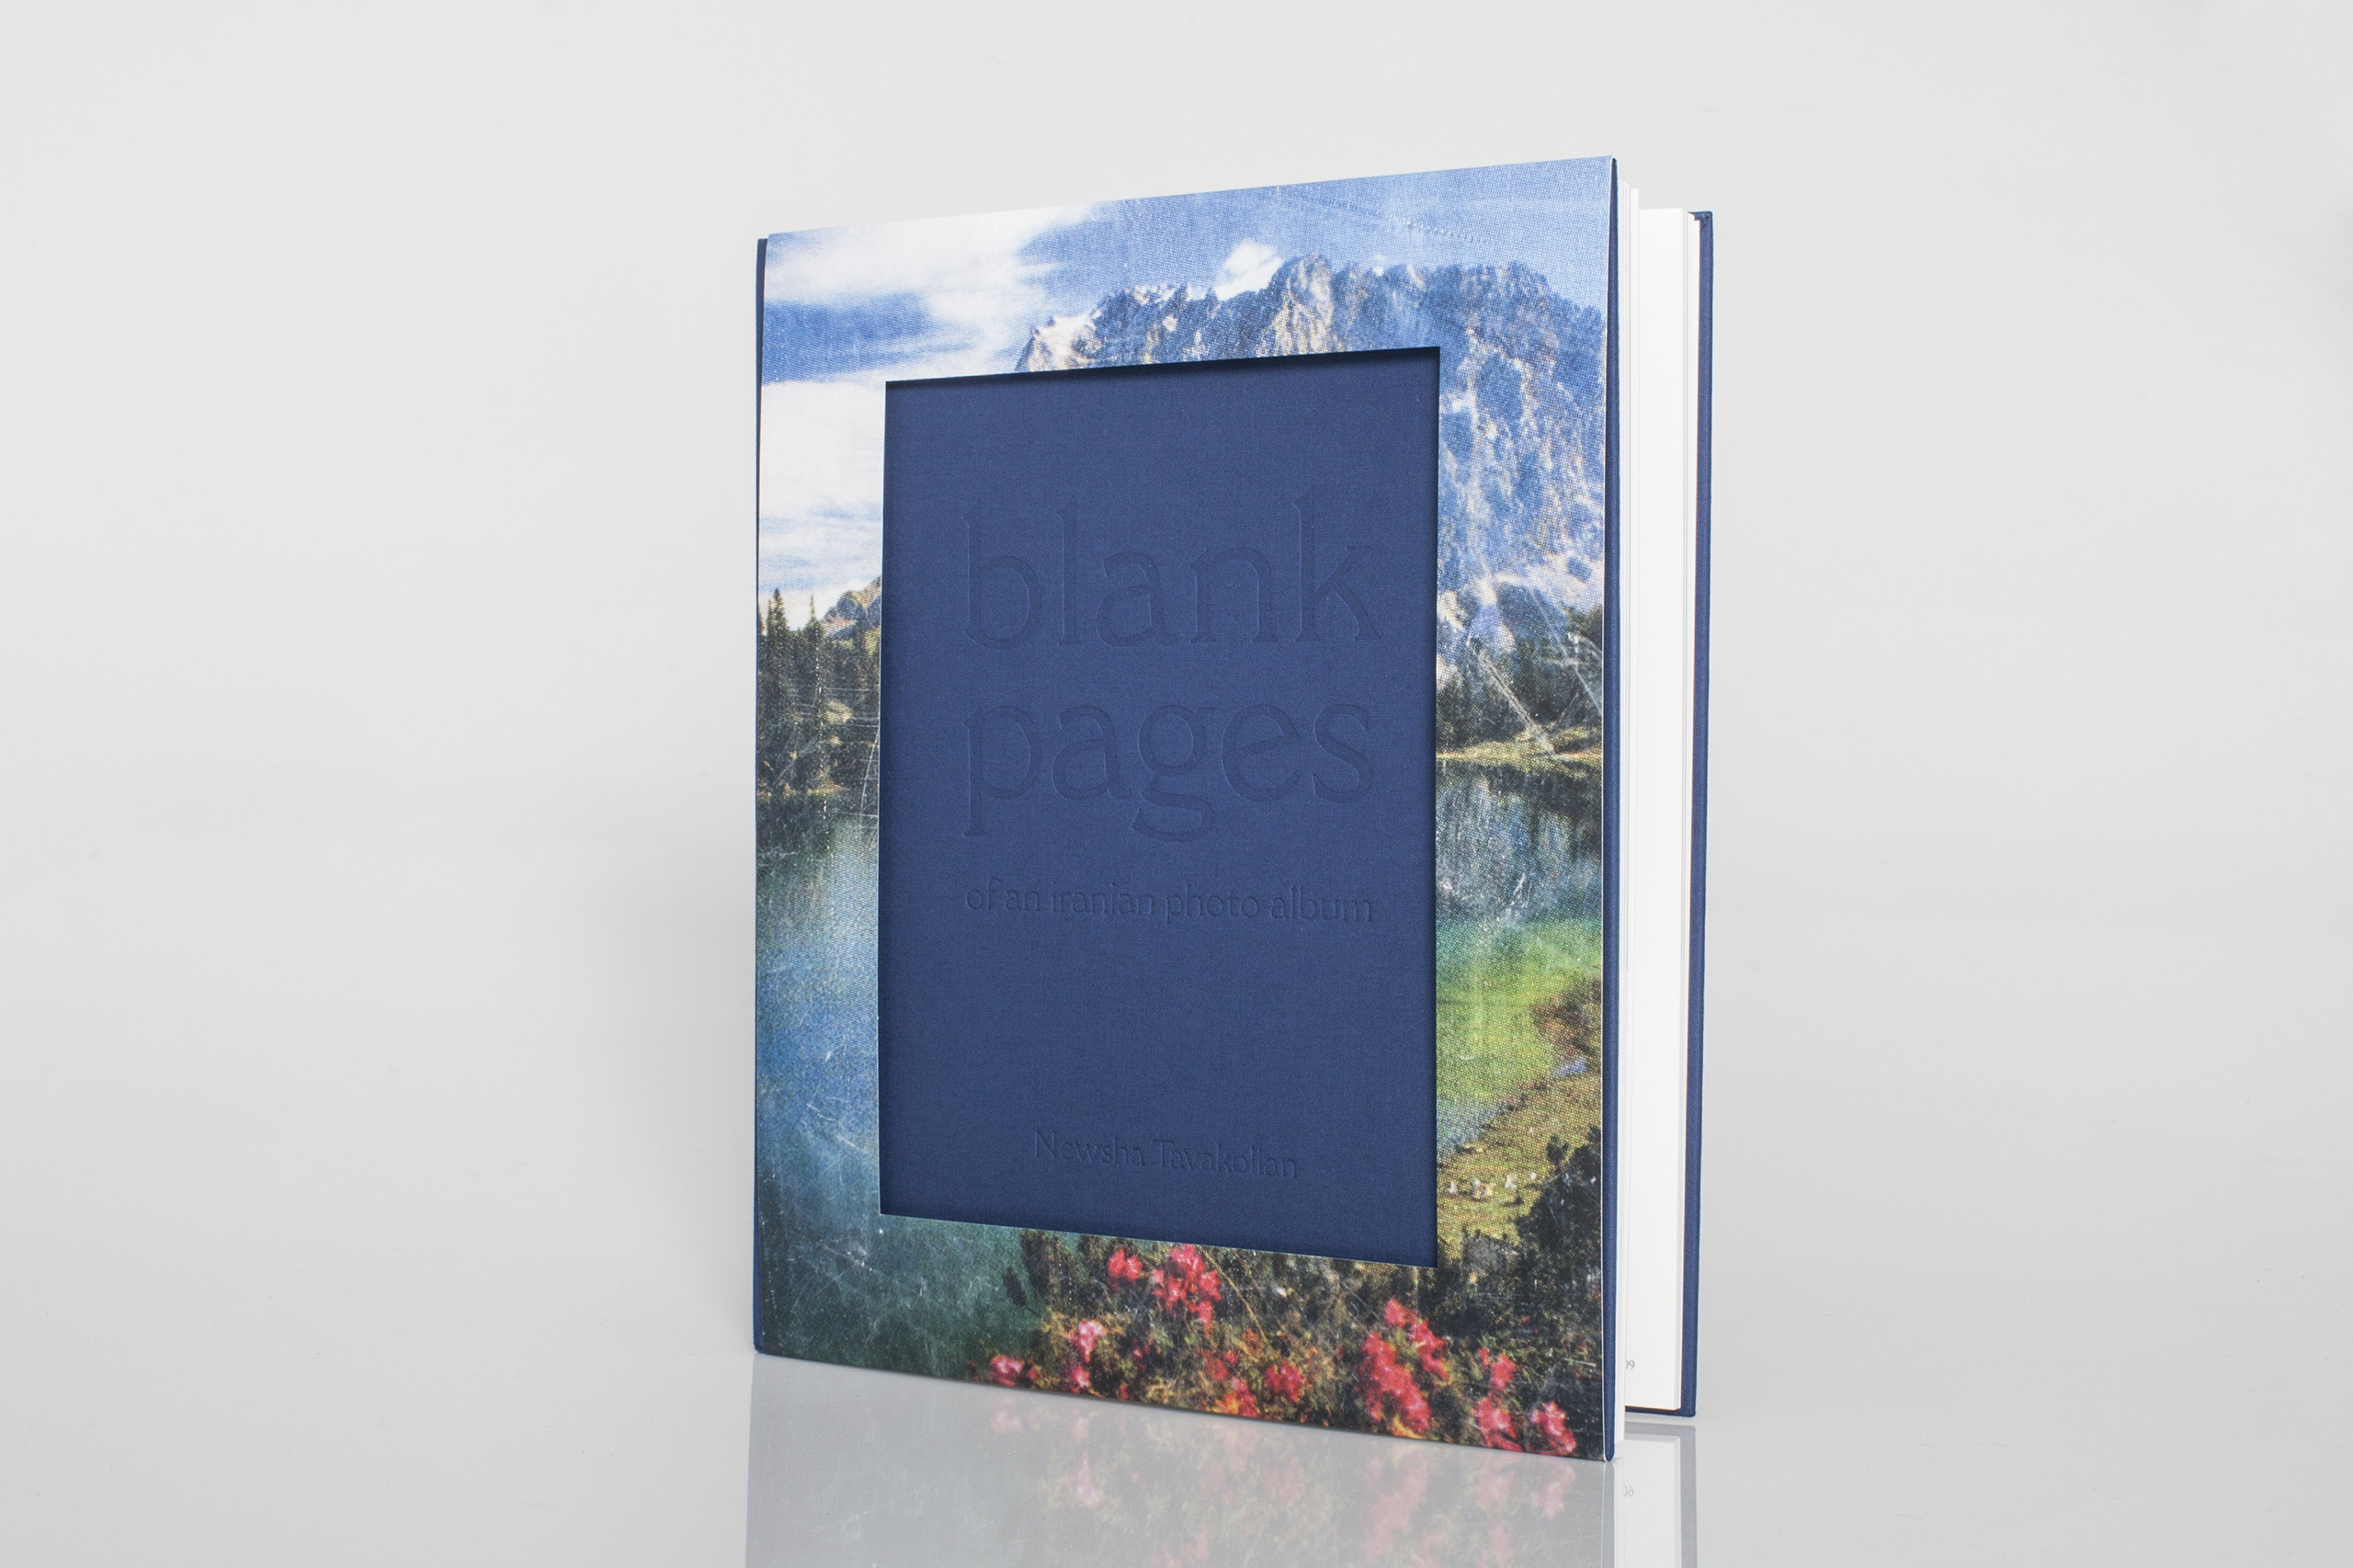 Blank Pages - Of an Iranian Photo Album  by Newsha TavakolianPublished by Kehrer Verlag